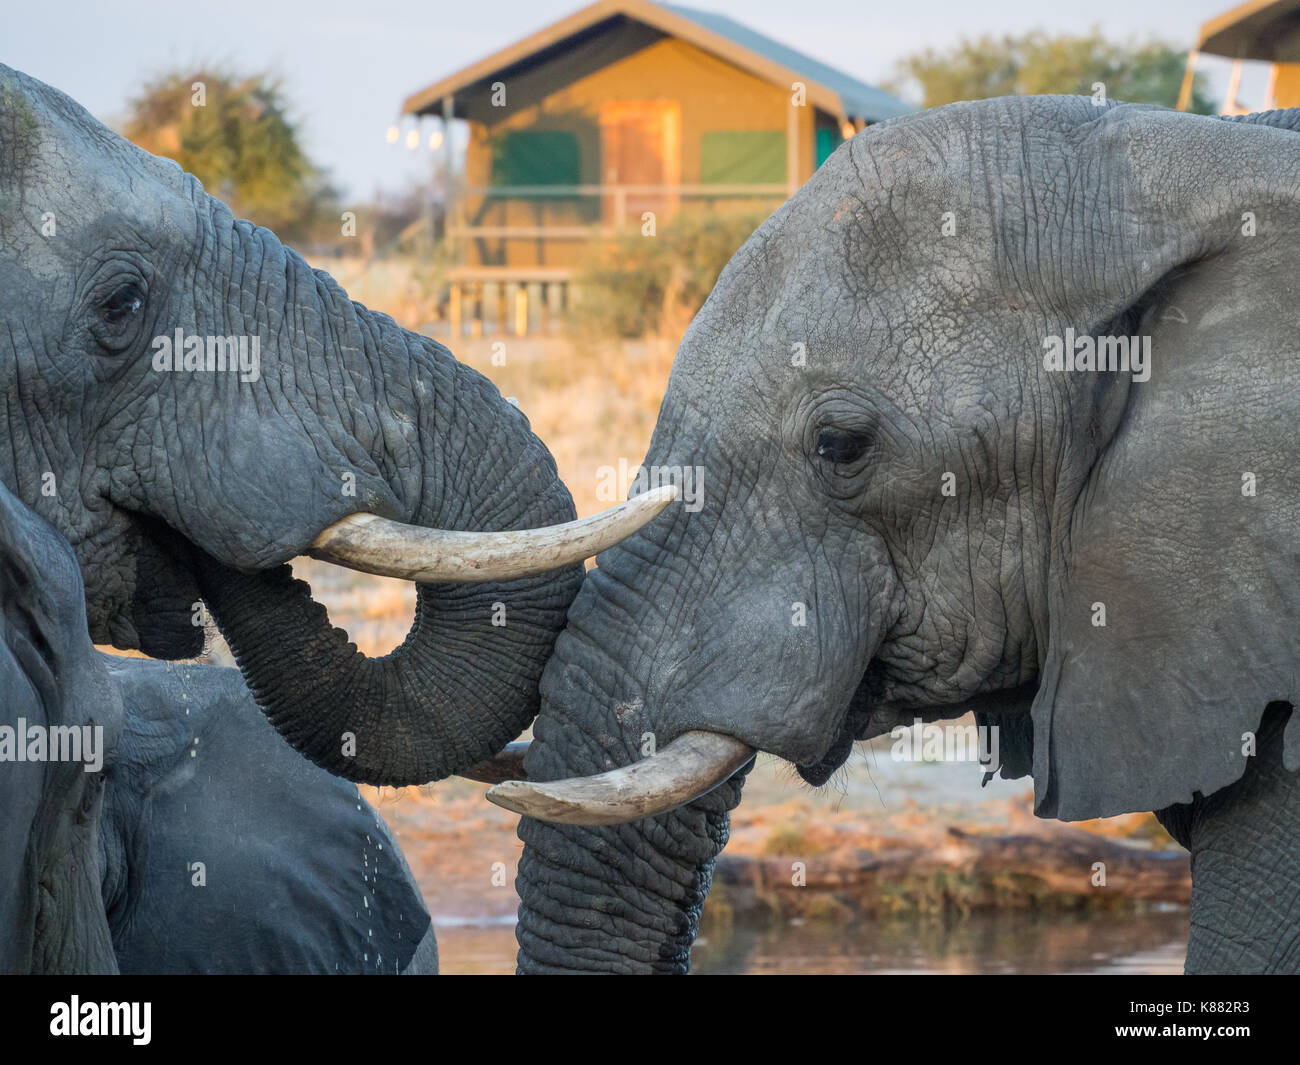 Two African elephants drinking head to head at waterhole with safari tent in background, Botswana, Africa. Stock Photo